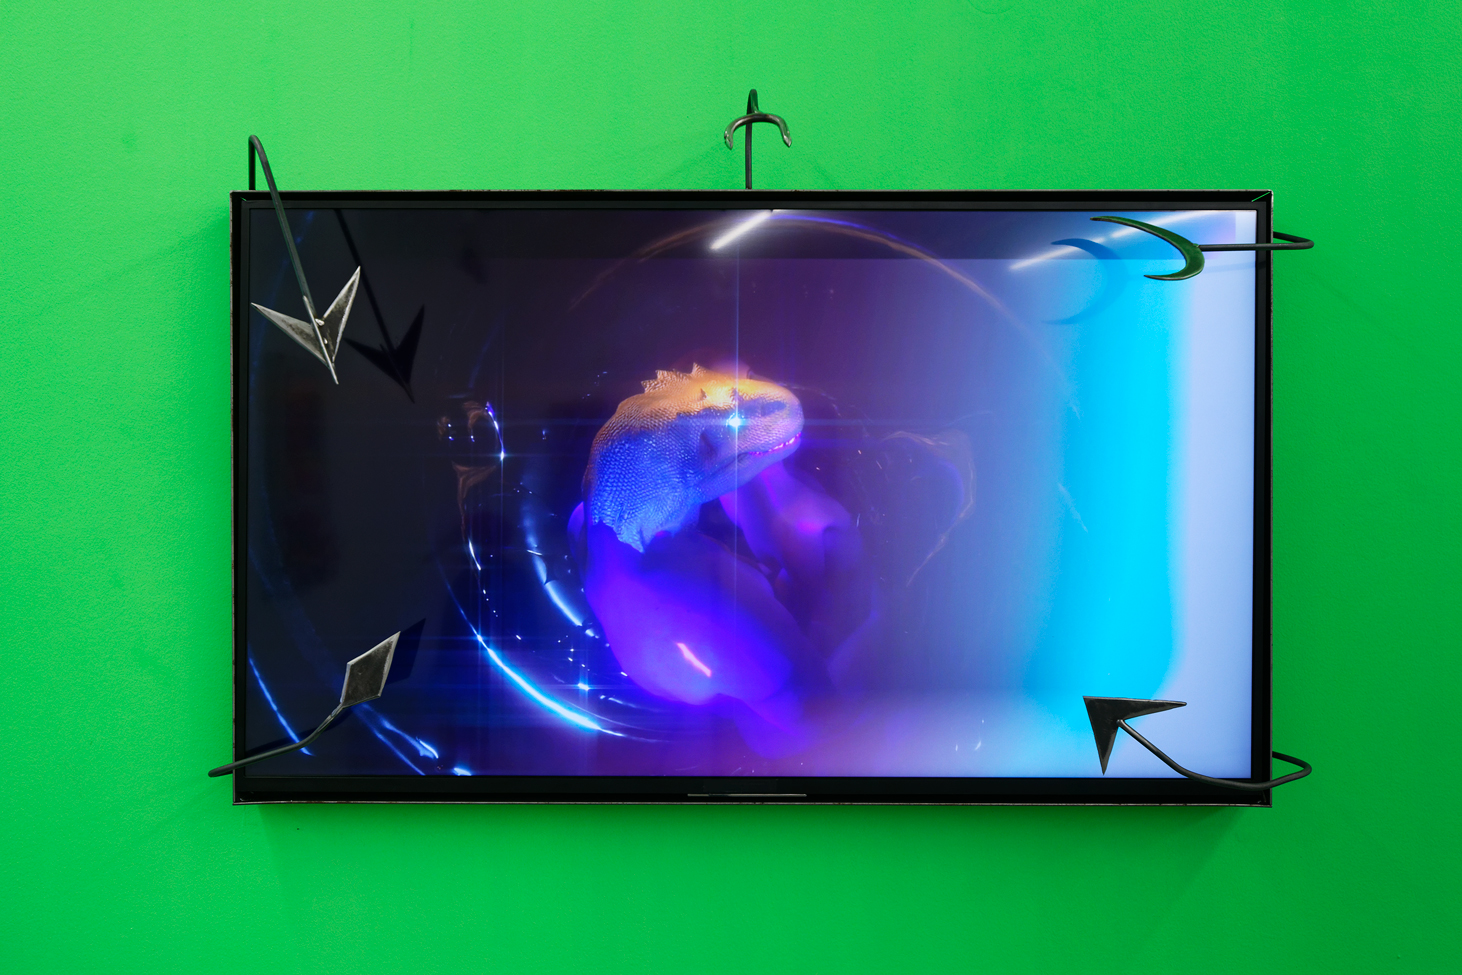 Tarek Lakhrissi, The Art of Losing (extract) and Frame for The Art of Losing, 2021. HD single channel video and metal frame. 00:01:35 and 144 x 98 x 45 cm. Installation view at Maison Populaire, Montreuil, FR. Photographer: Aurélien Mole.